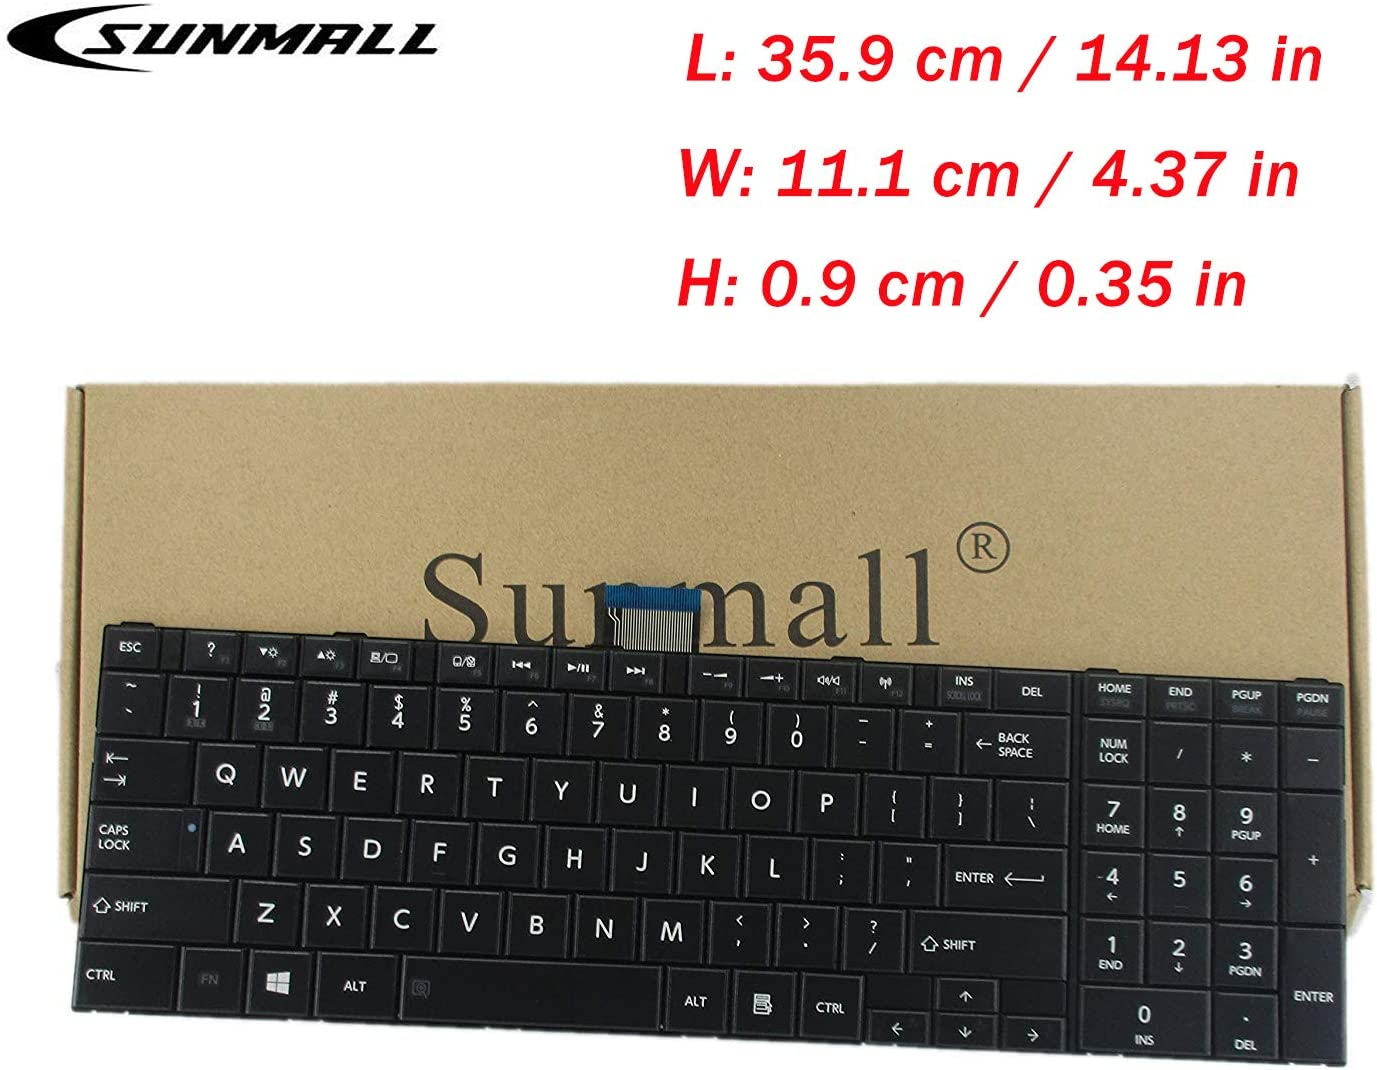 SUNMALL Keyboard Replacement Compatible with Toshiba Satellite C50-A C55-A C55D-A C55T-A C55DT-A C55DT-A Series Laptop,fits Part Number V143026CS1 132412258 (DO NOT FIT C50-B, C50D-B,C55-B, C55D-B)